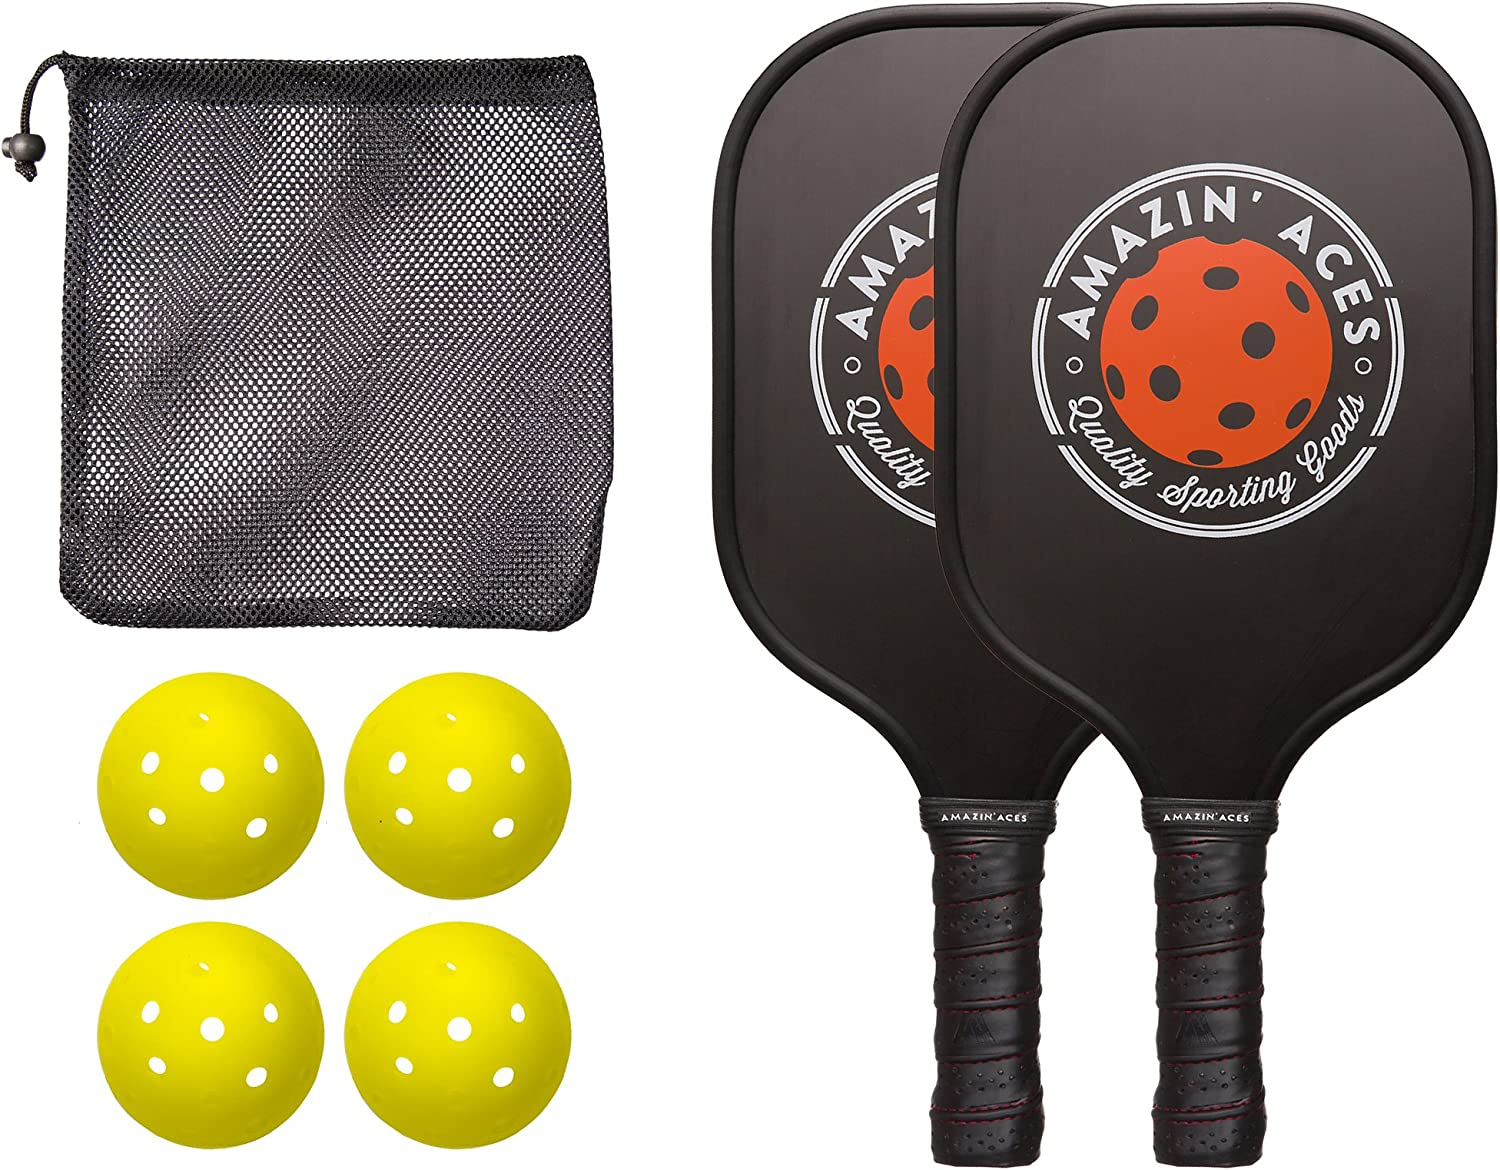 Amazin' Aces Pickleball Paddle Set | Pickleball Set Includes Two Graphite Pickleball Paddles + Four Balls + One Mesh Carry Bag | Premium Rackets Graphite Face & Polymer Honeycomb Core : Sports & Outdoors